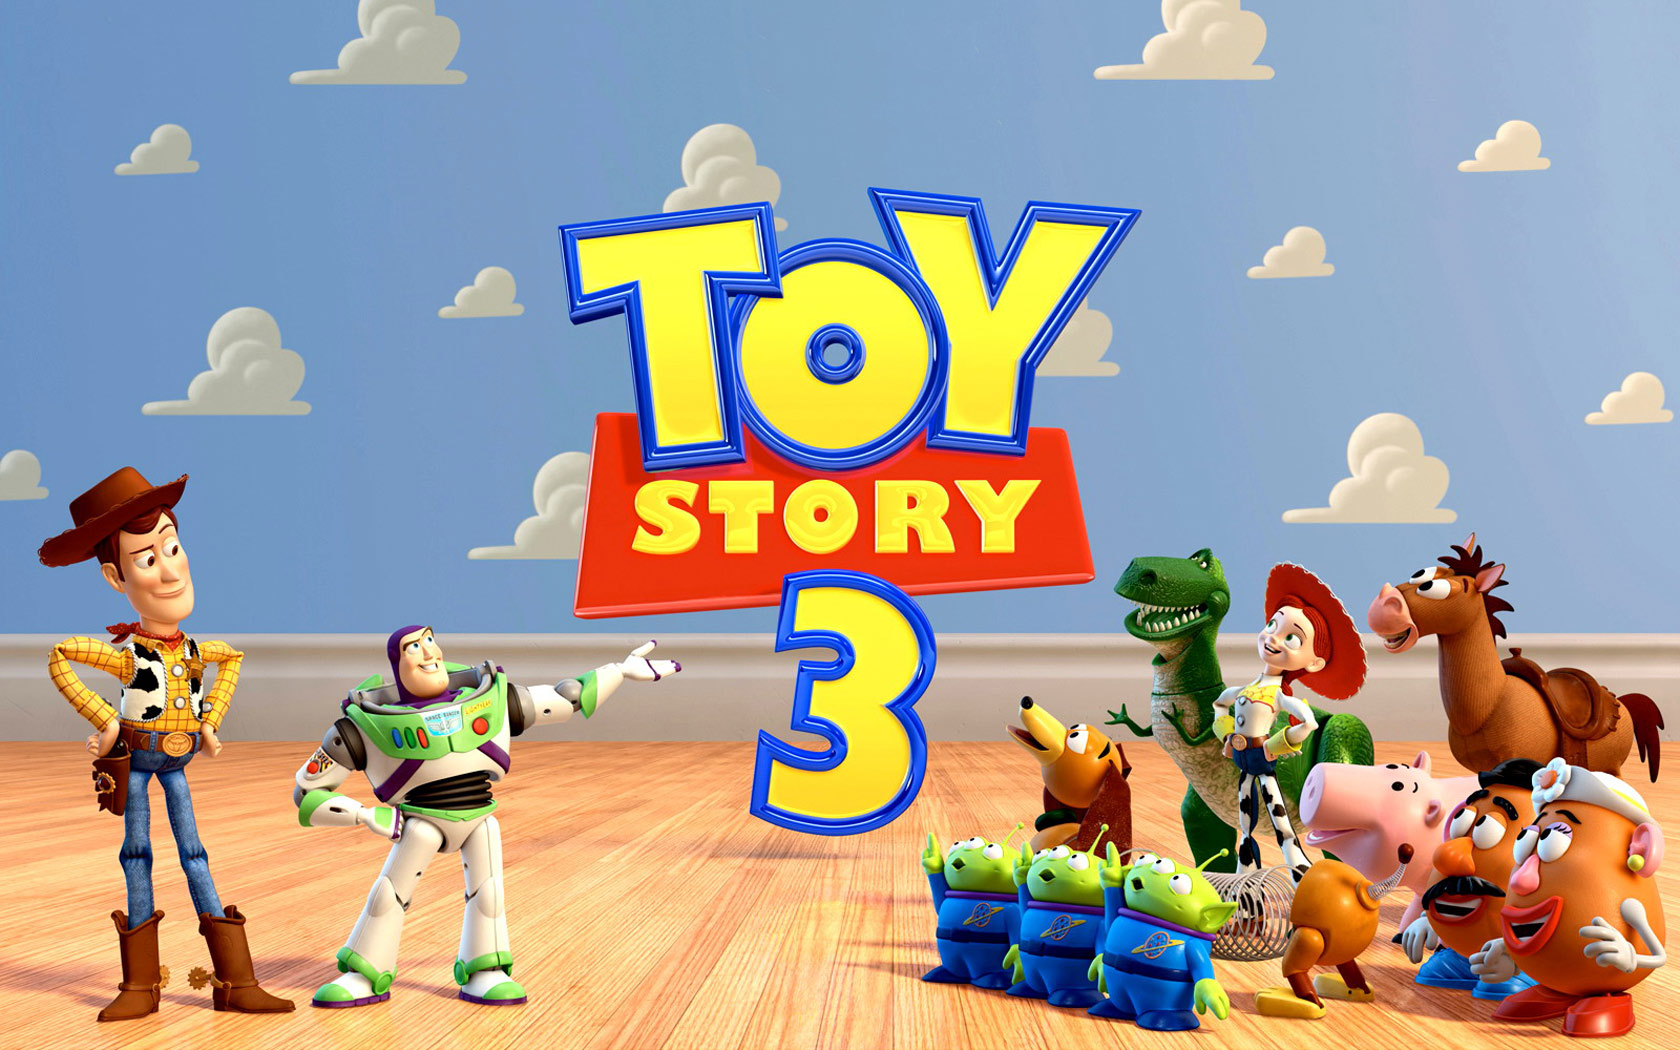 http://www.weesk.com/wallpaper/cinema/toy-story/toy-story-3-toy-story-cinema.jpg